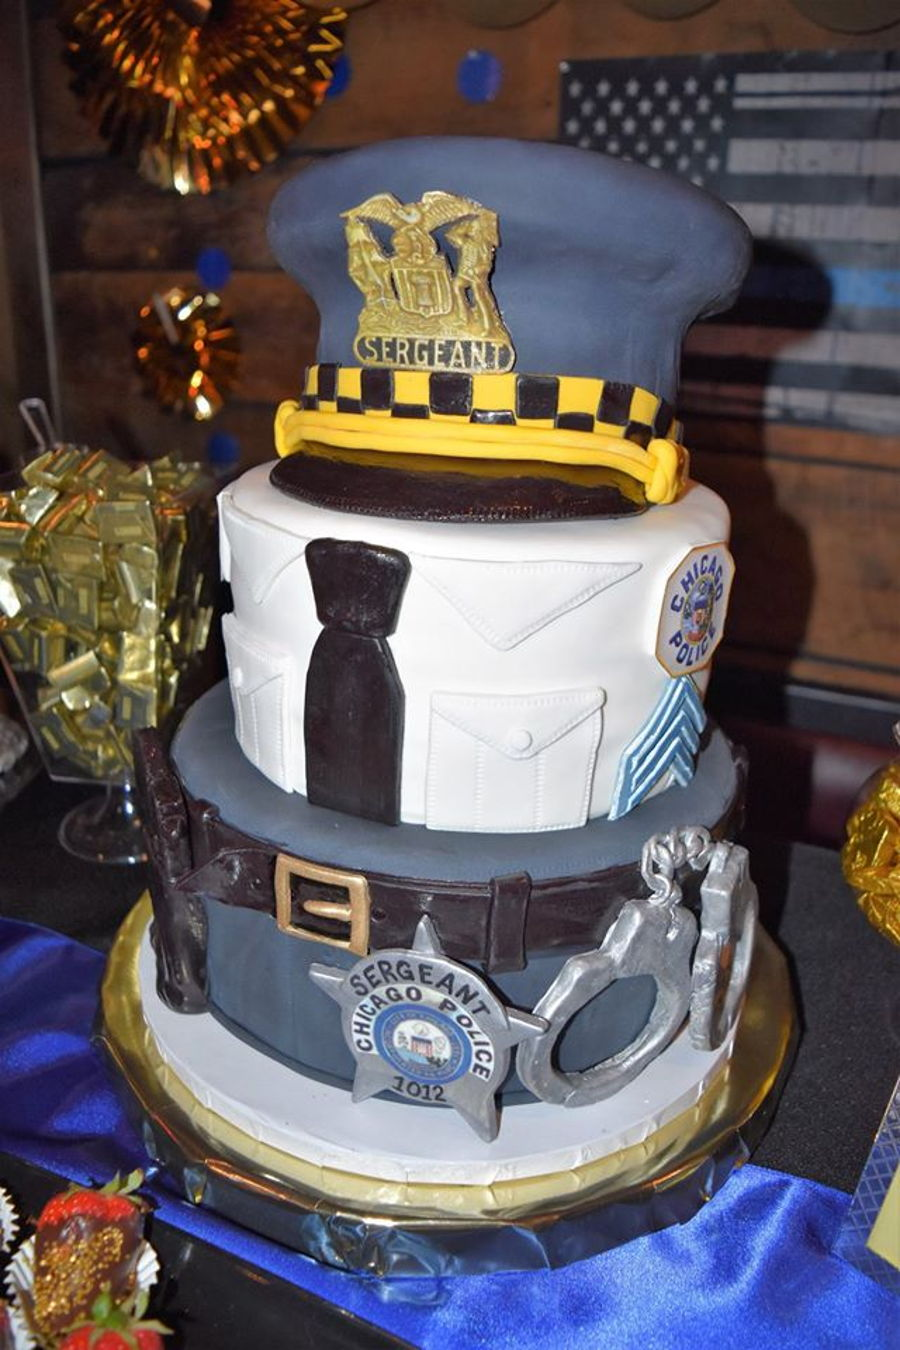 Chicago Police Sergeant Promotional Cake On Central